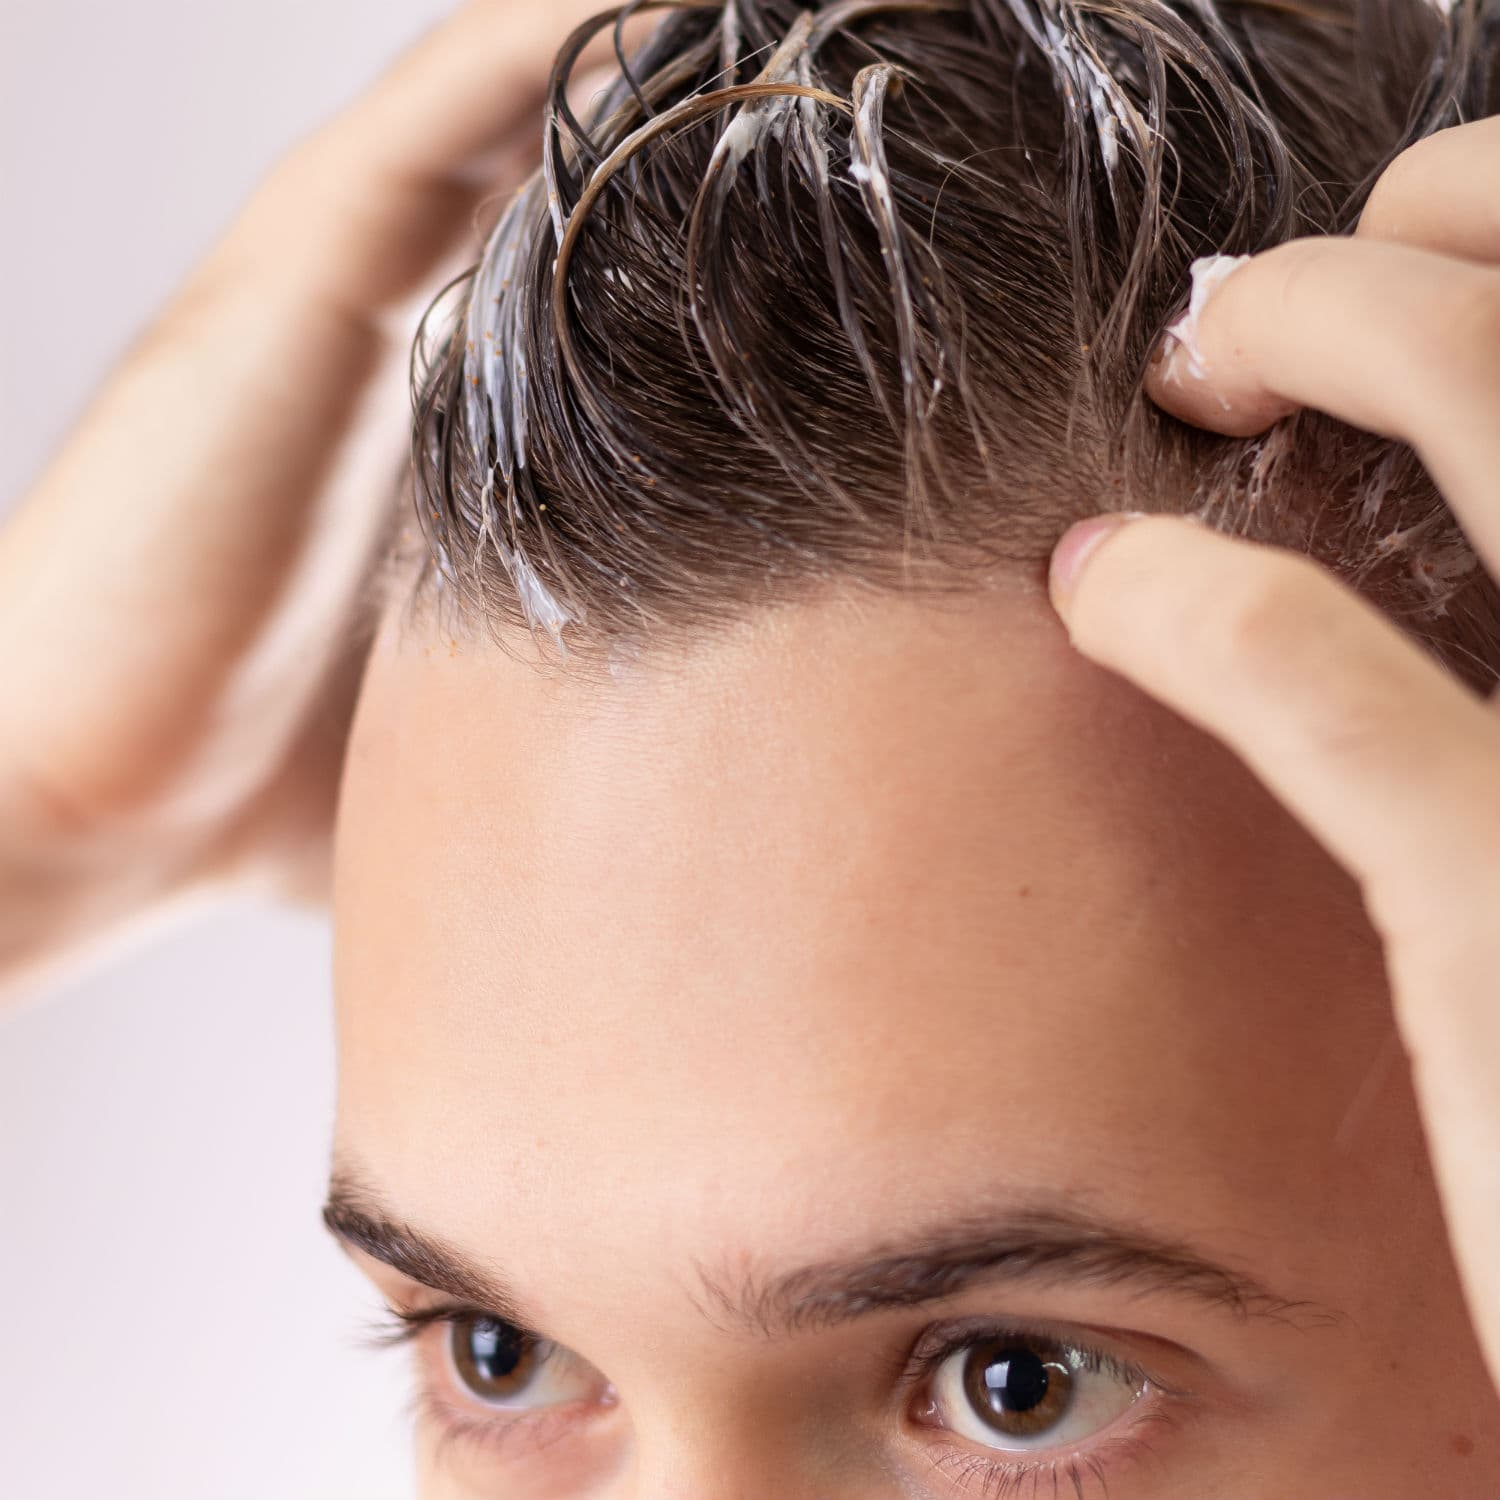 Hair Growth & Repair Shampoo For Men